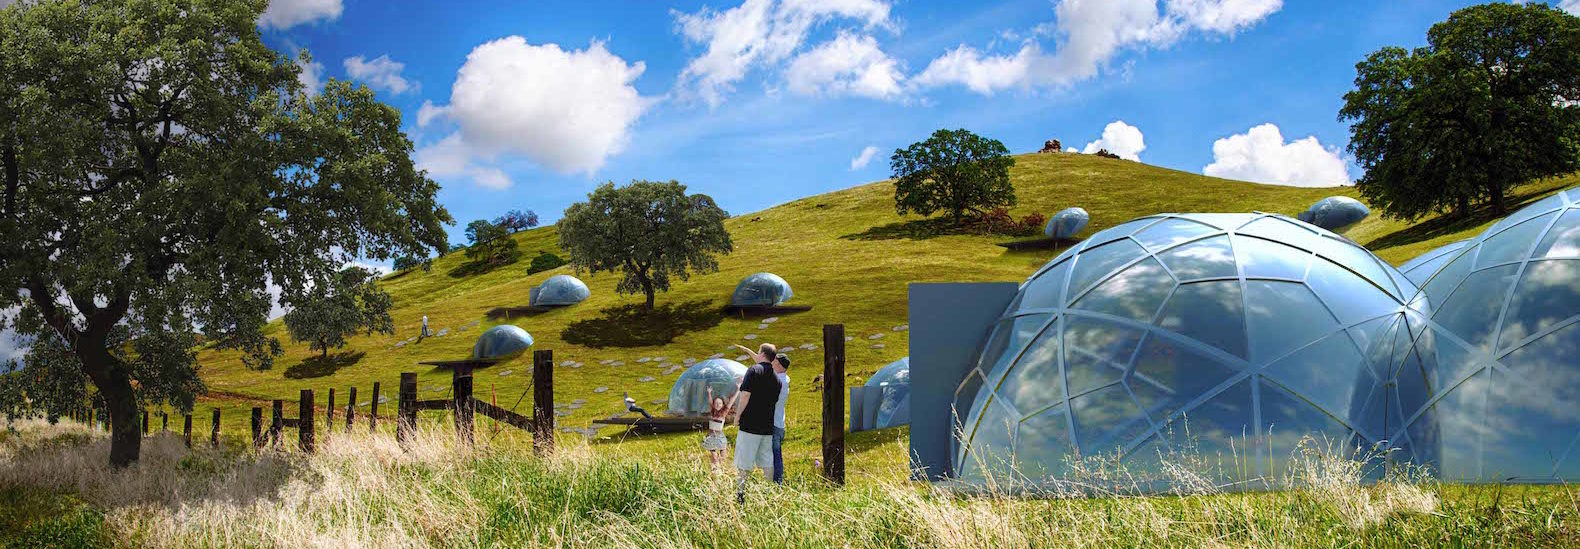 Prefab Smartdome Homes Can Pop Up Practically Anywhere